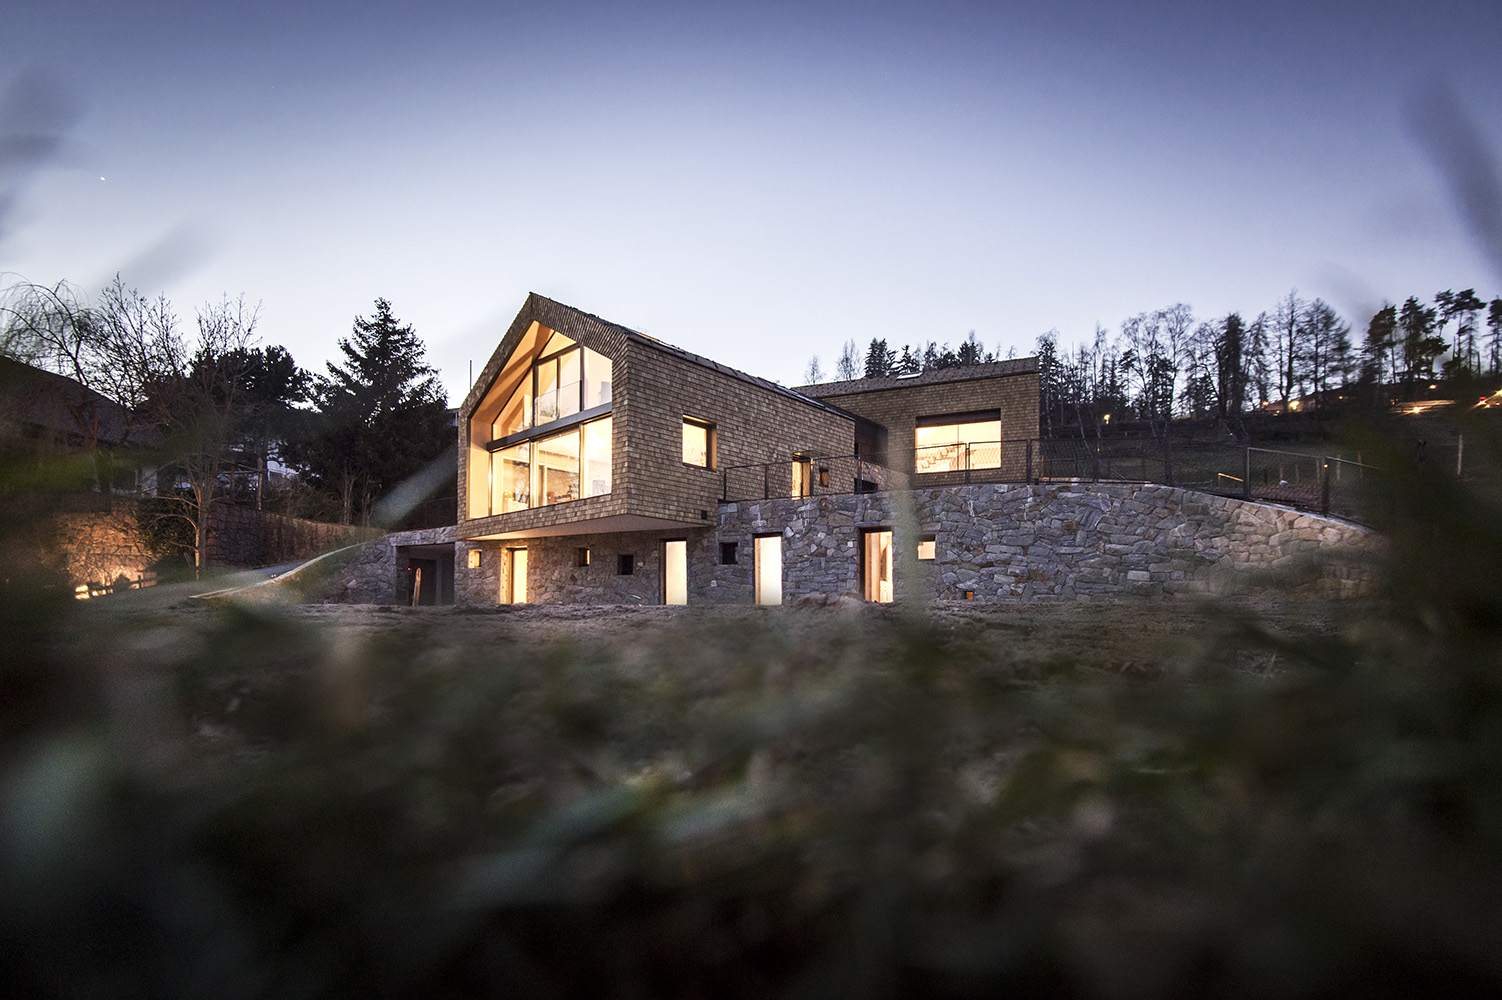 stone walls and wooden facade